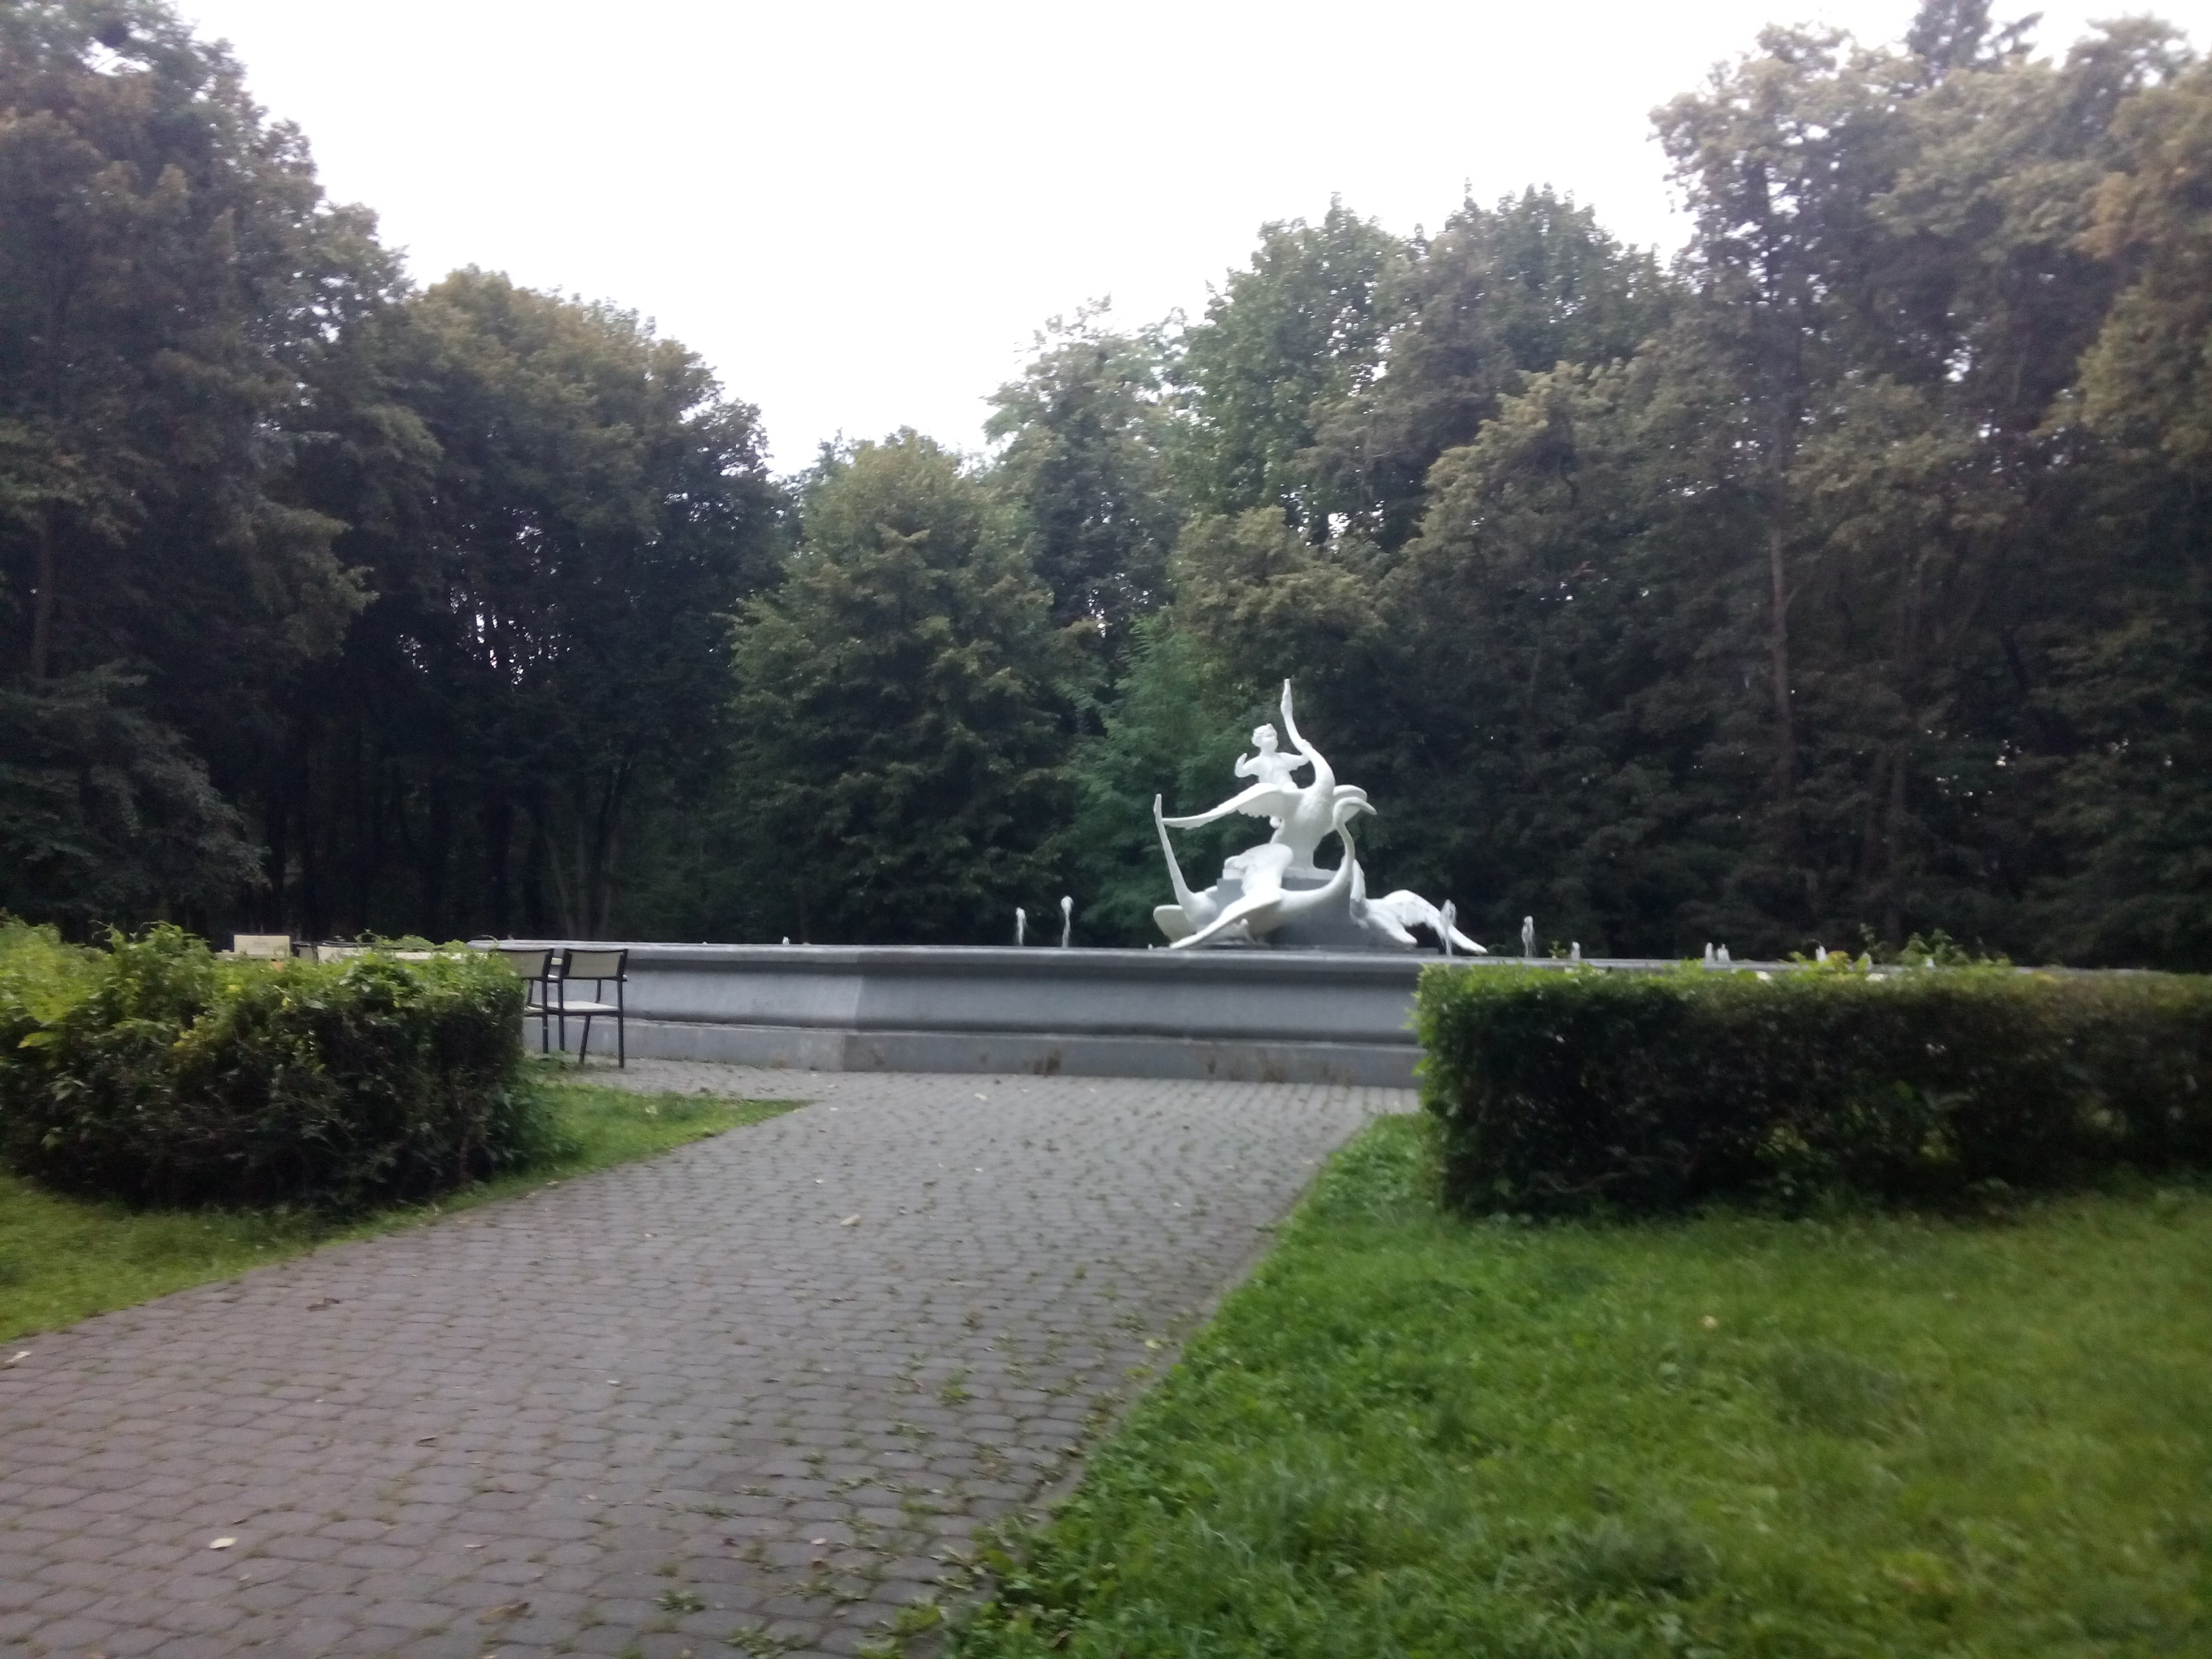 A cobbled path leads to a bright white elaborate swan fountain, with trees in the background, but no water